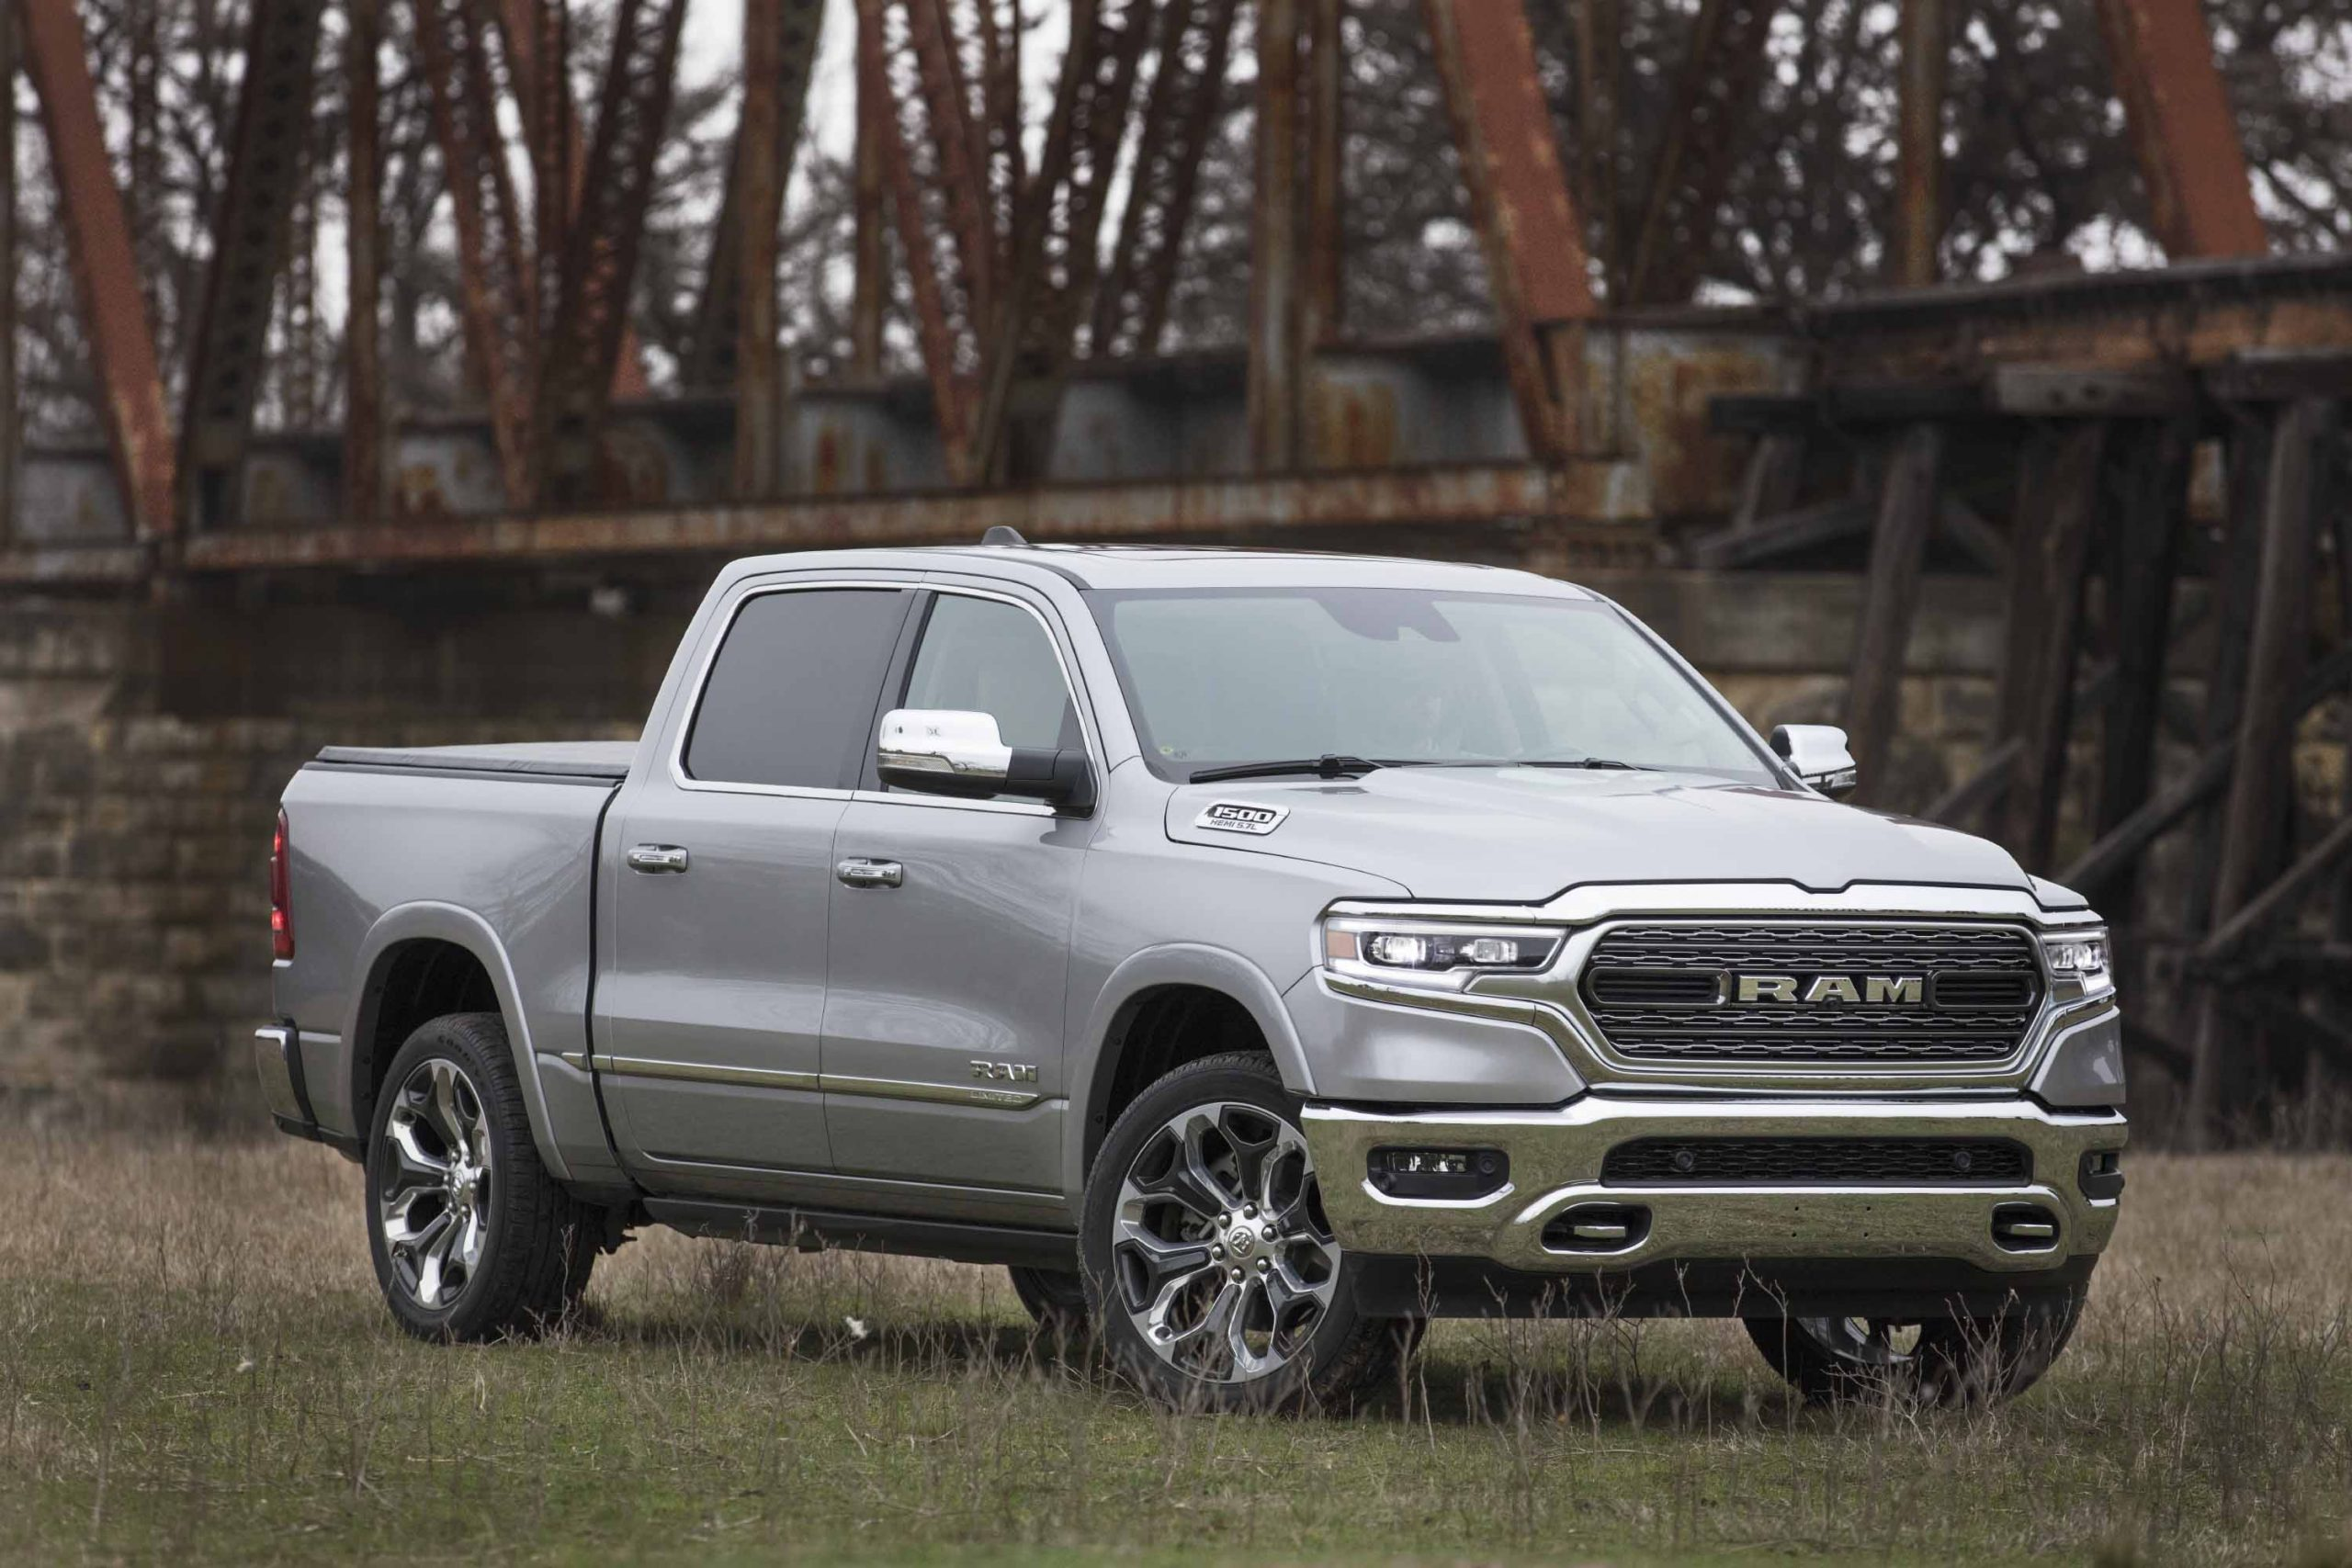 Pickup Truck Prices Reach Record Highs Cost Of A 2021 Chevy Silverado Incentives, Inside, Images